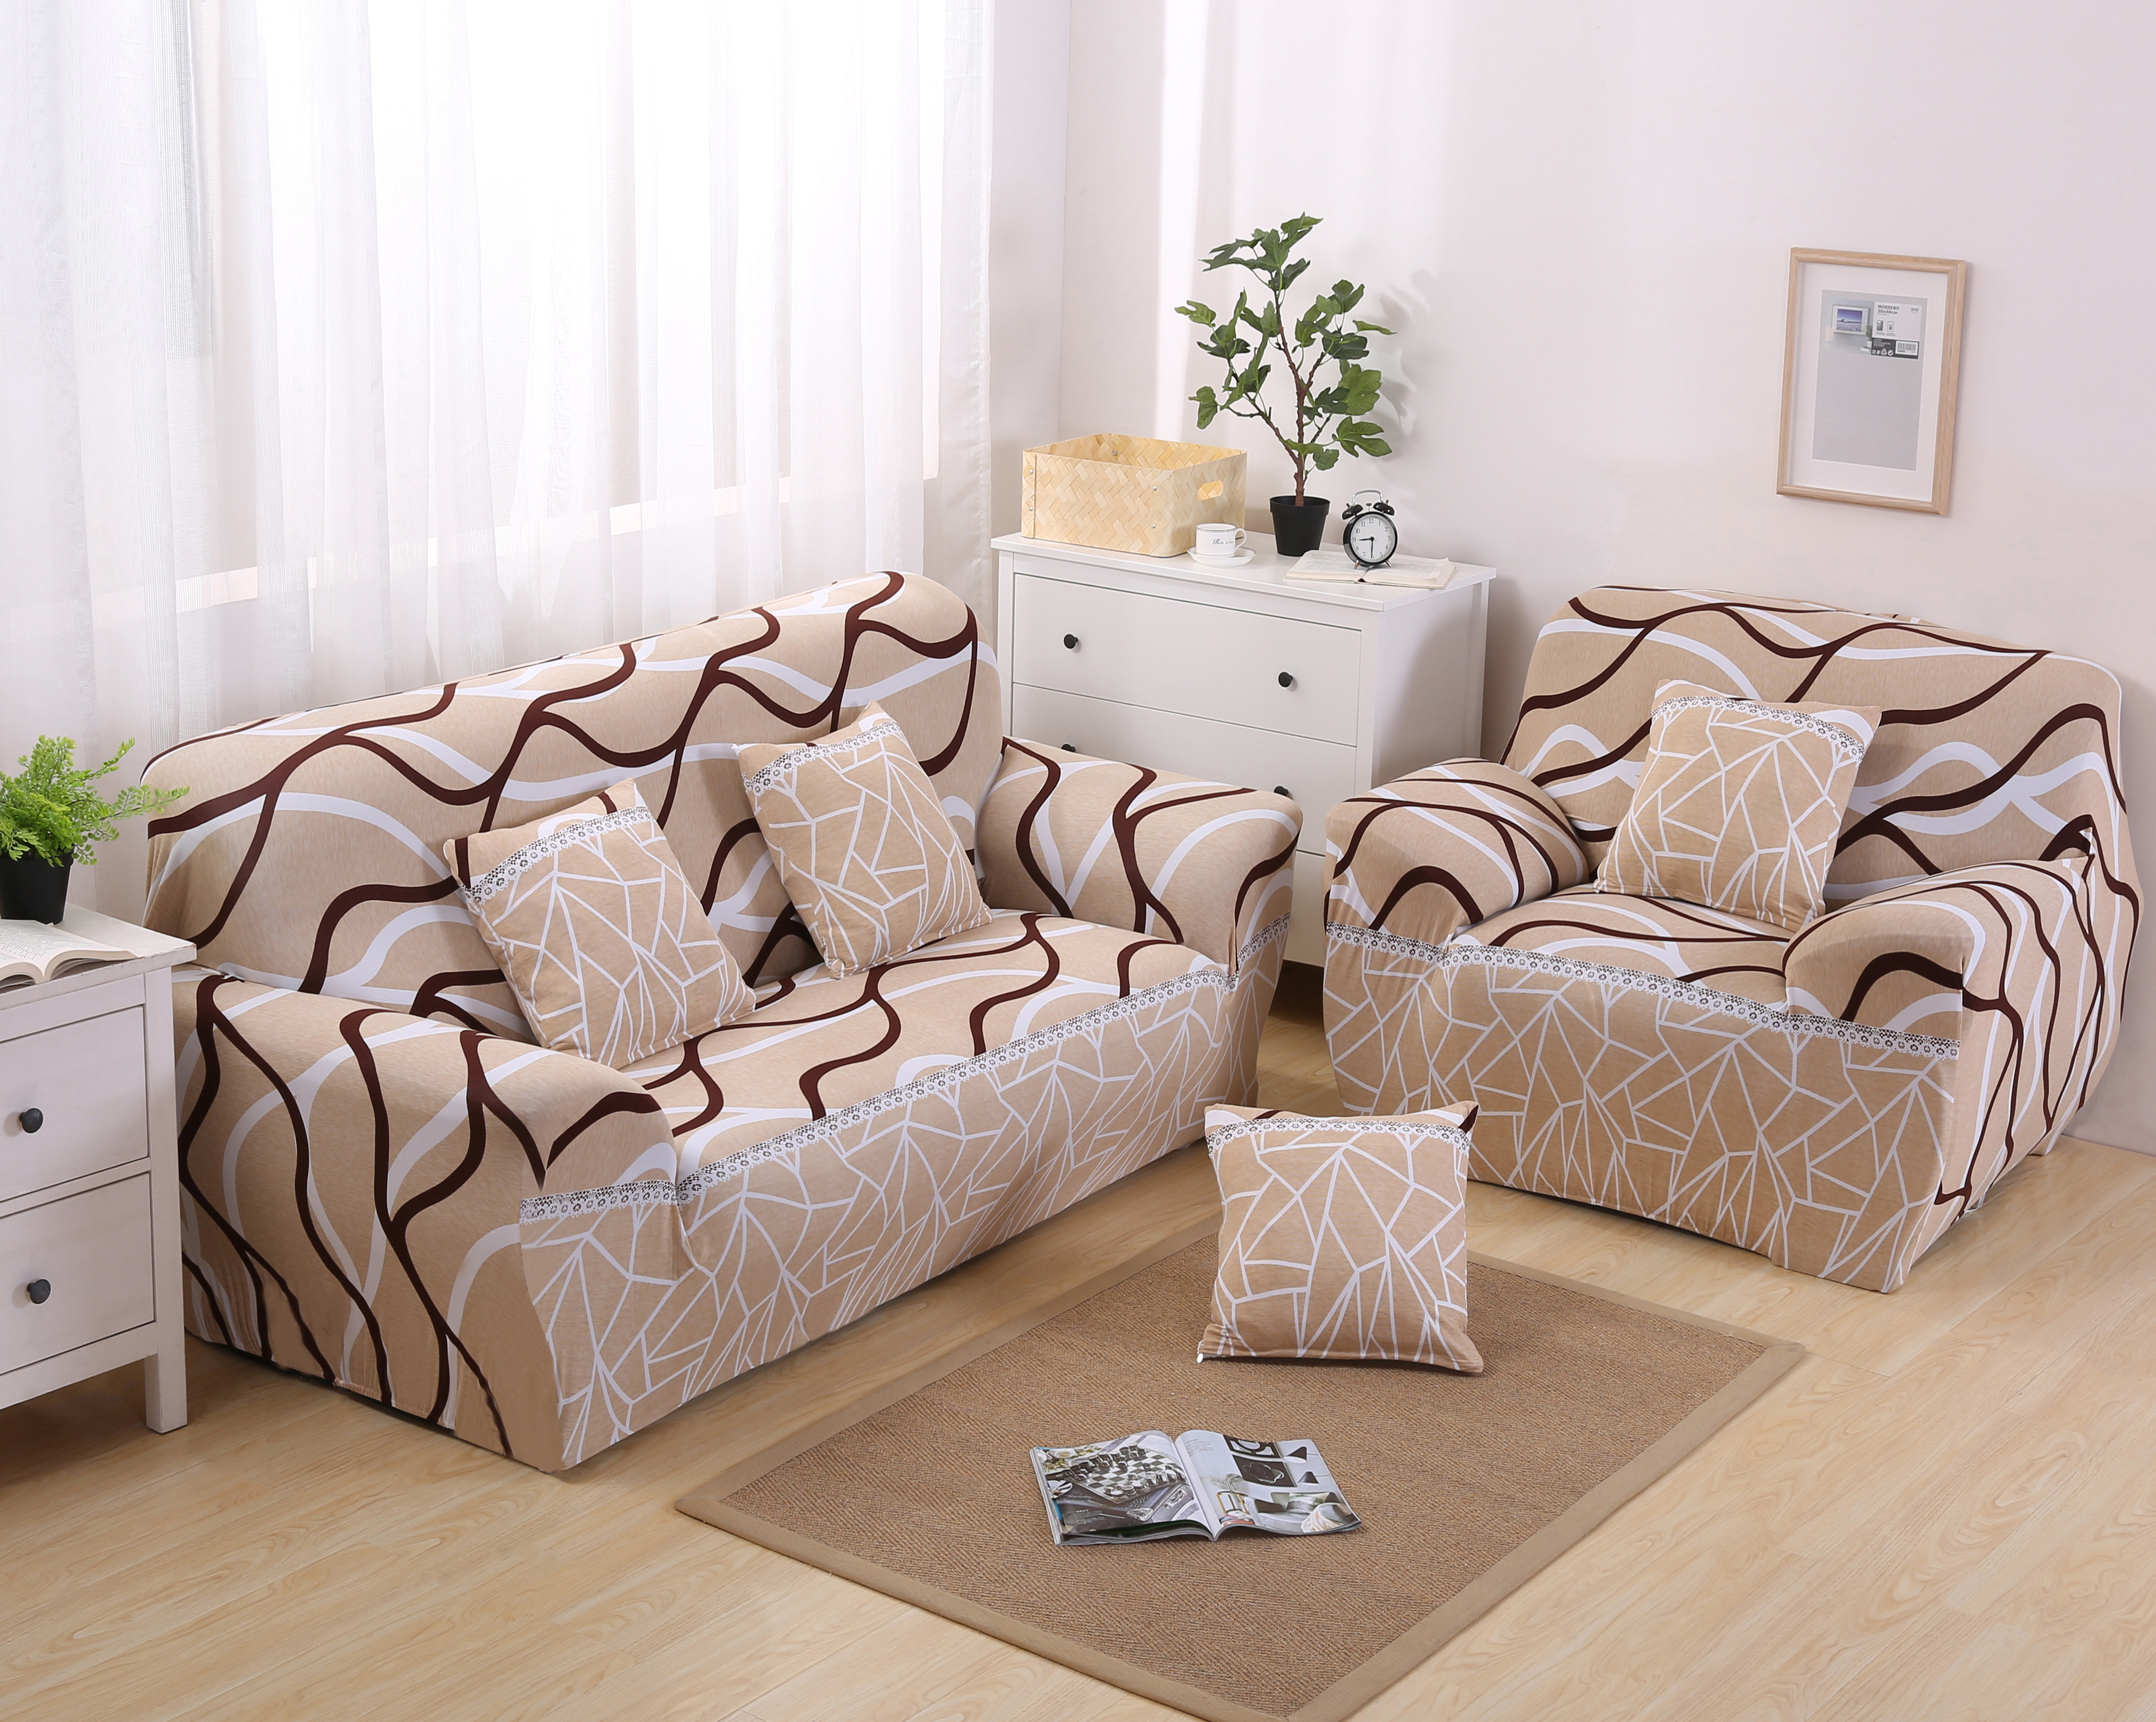 Monily Stripe Lingkaran Sofa Cover Ketat Wrap Penutup All Inclusive Anti Slip Elastis Sofa Covers Elastis